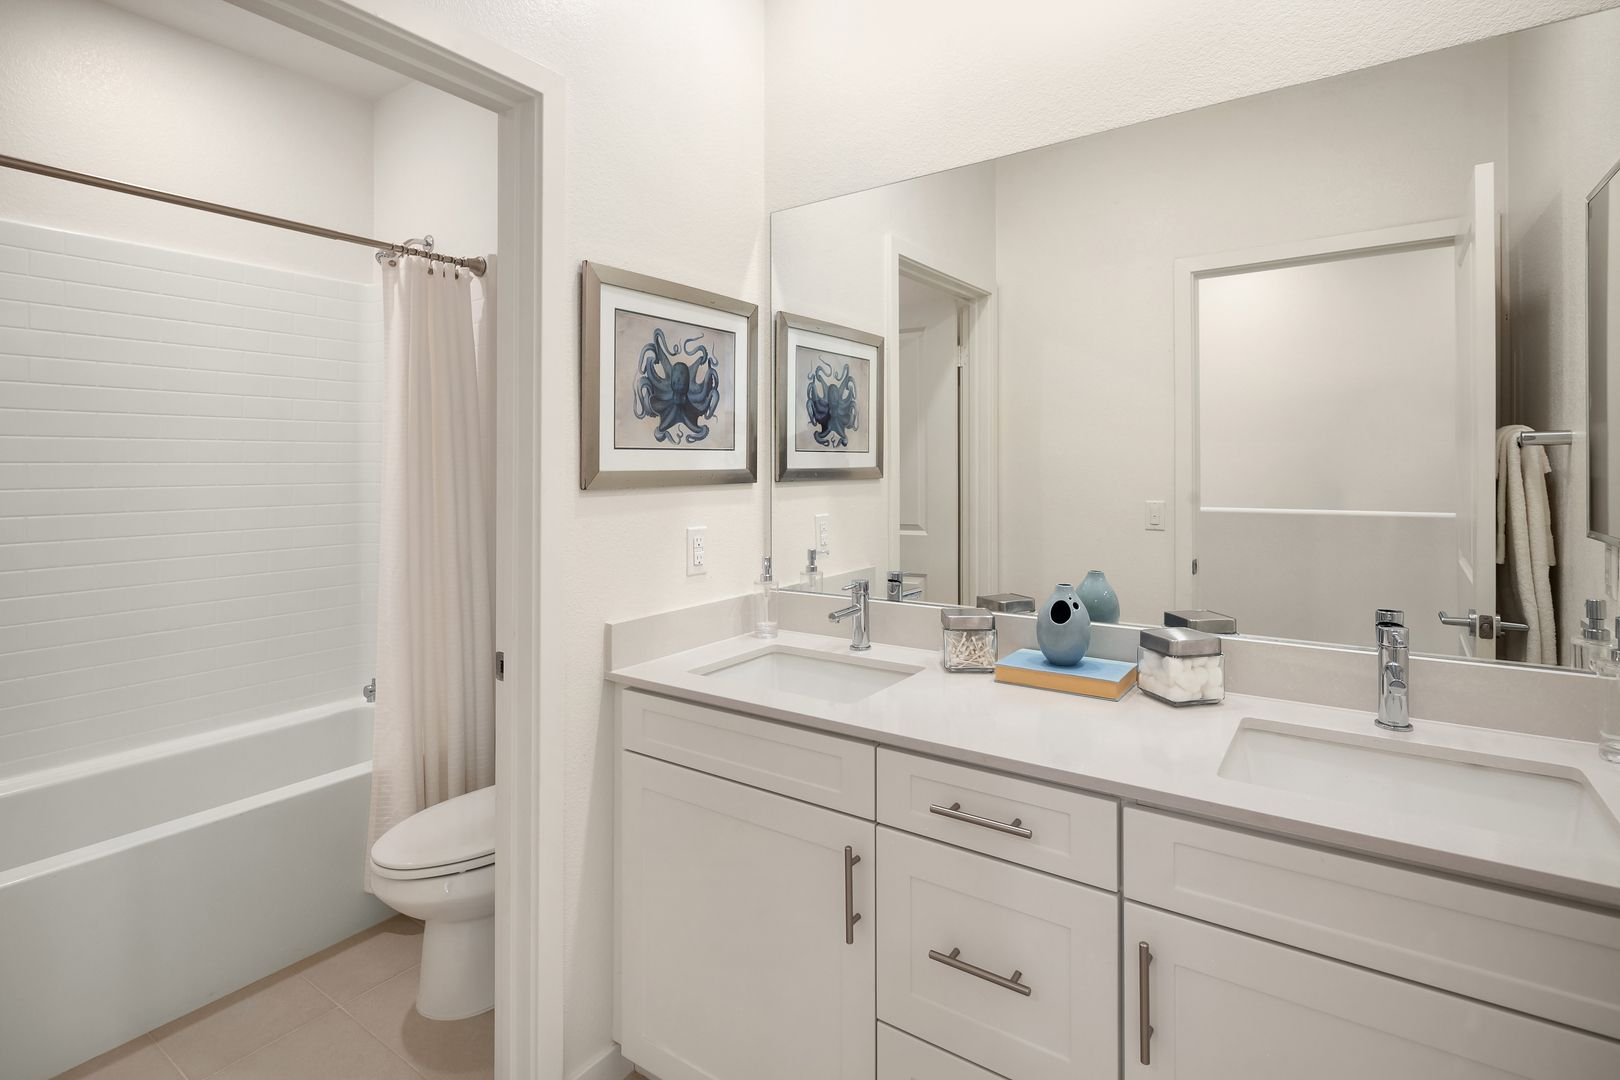 Bathroom featured in the Plan 1 By RC Homes Inc in Los Angeles, CA